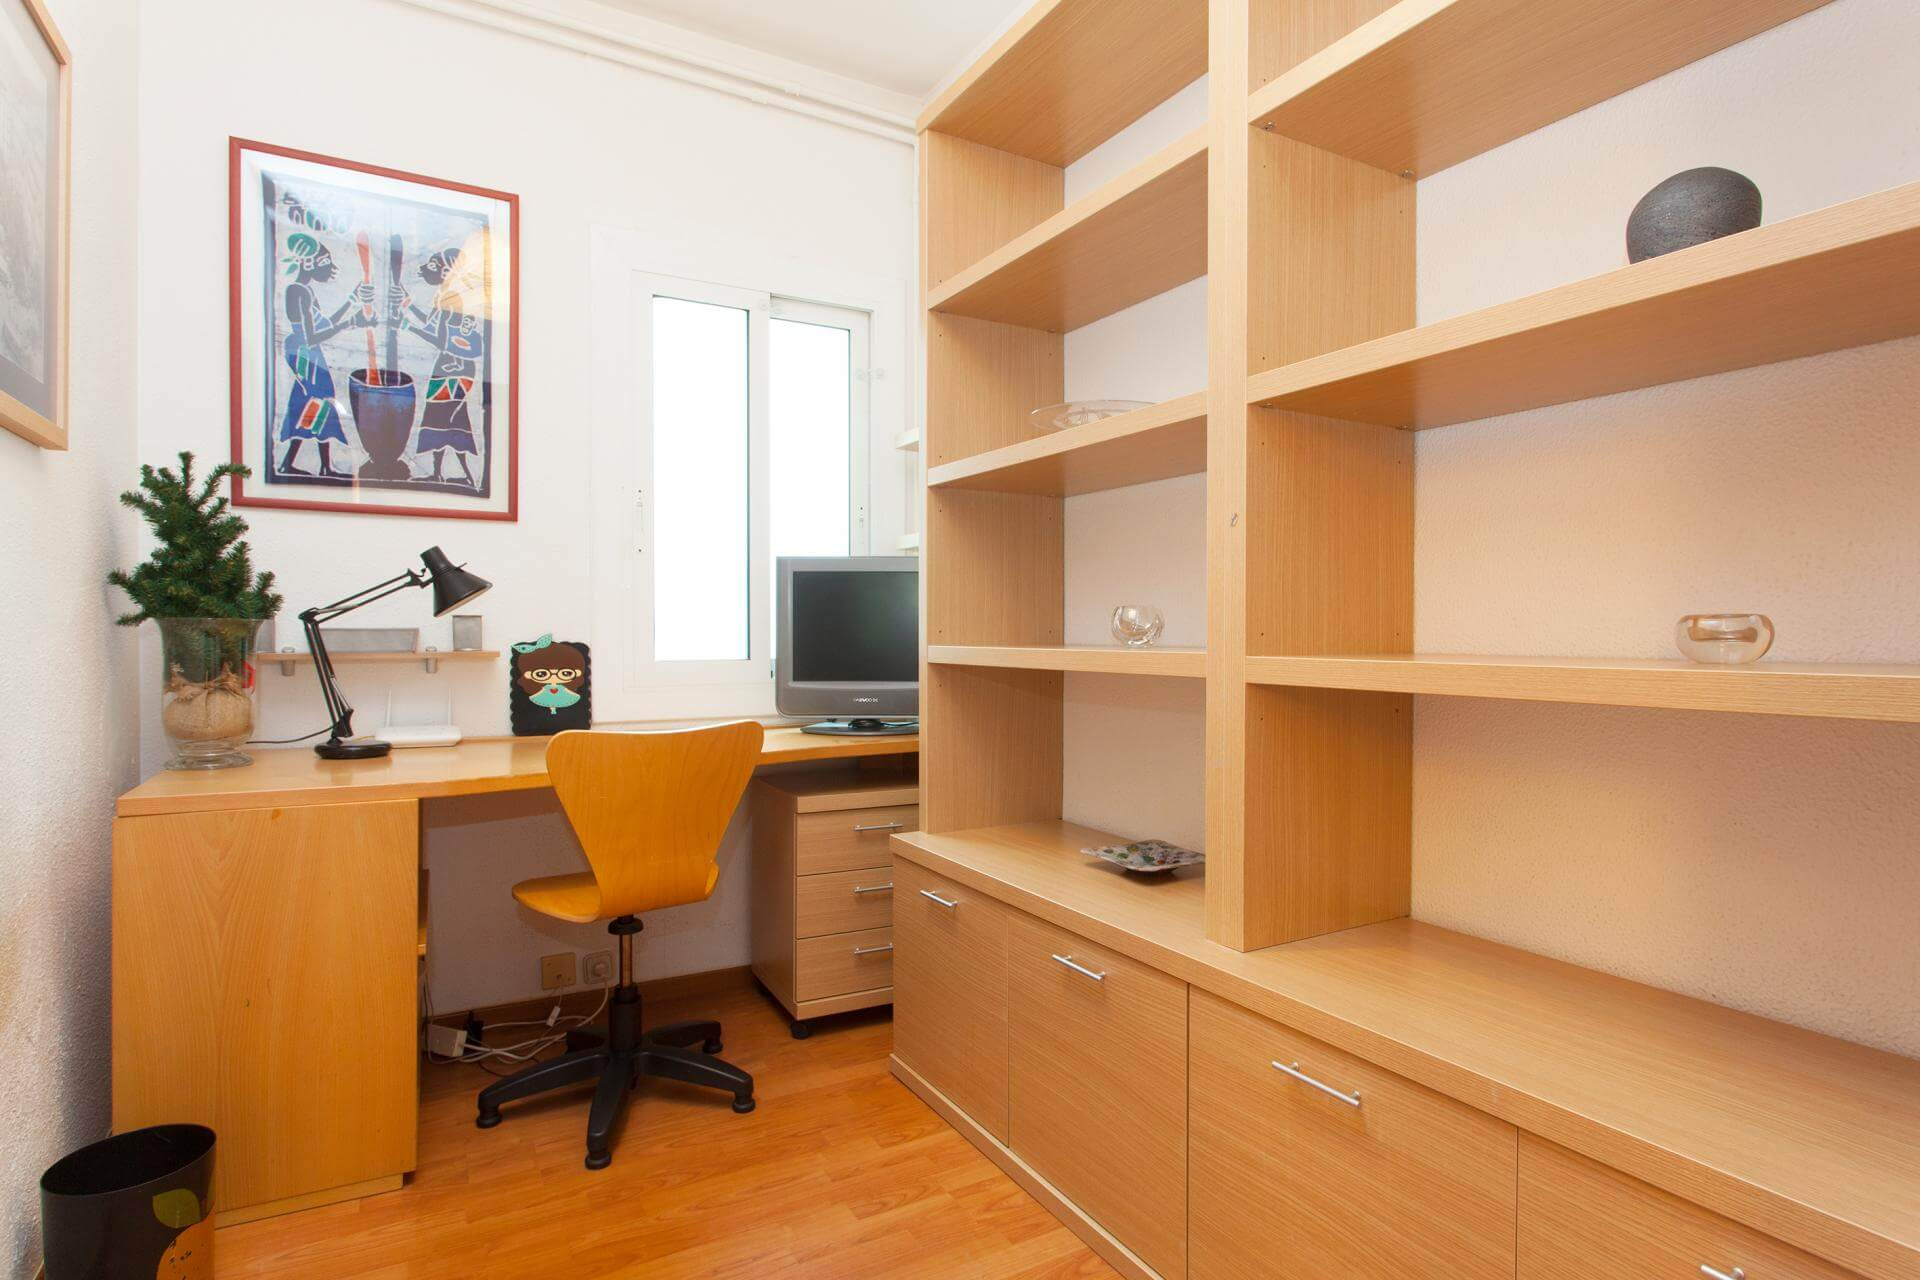 Shbarcelona Appartement Meubl En Location Longue Dur E   Caution Location  Appartement Meuble .